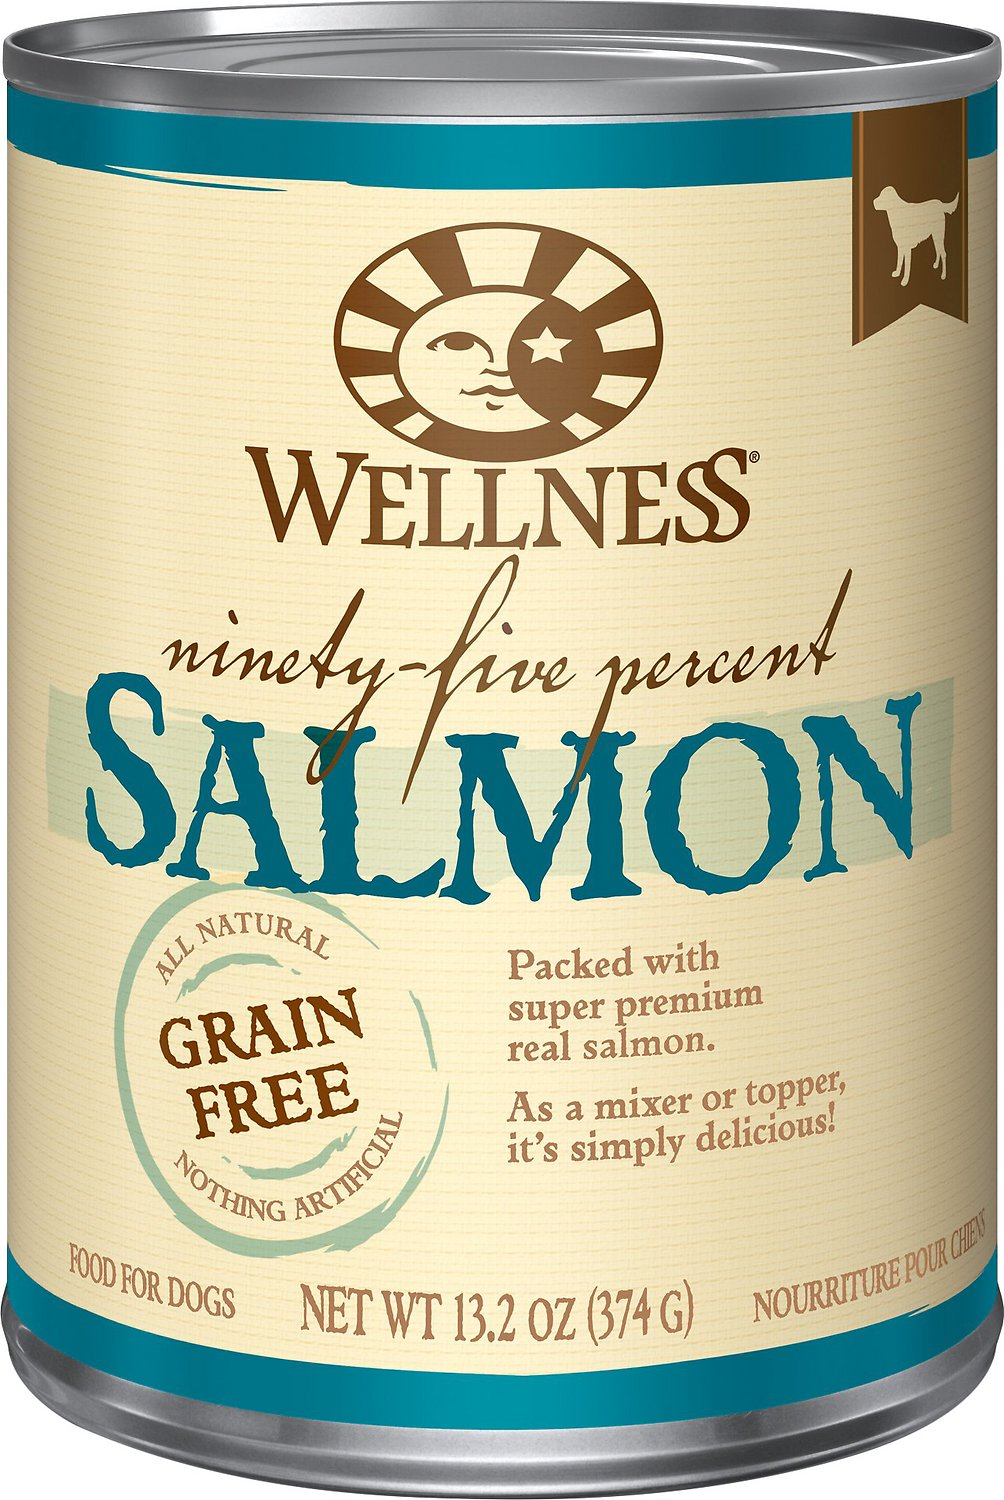 Wellness 95% Salmon Grain-Free Canned Dog Food, 13.2-oz